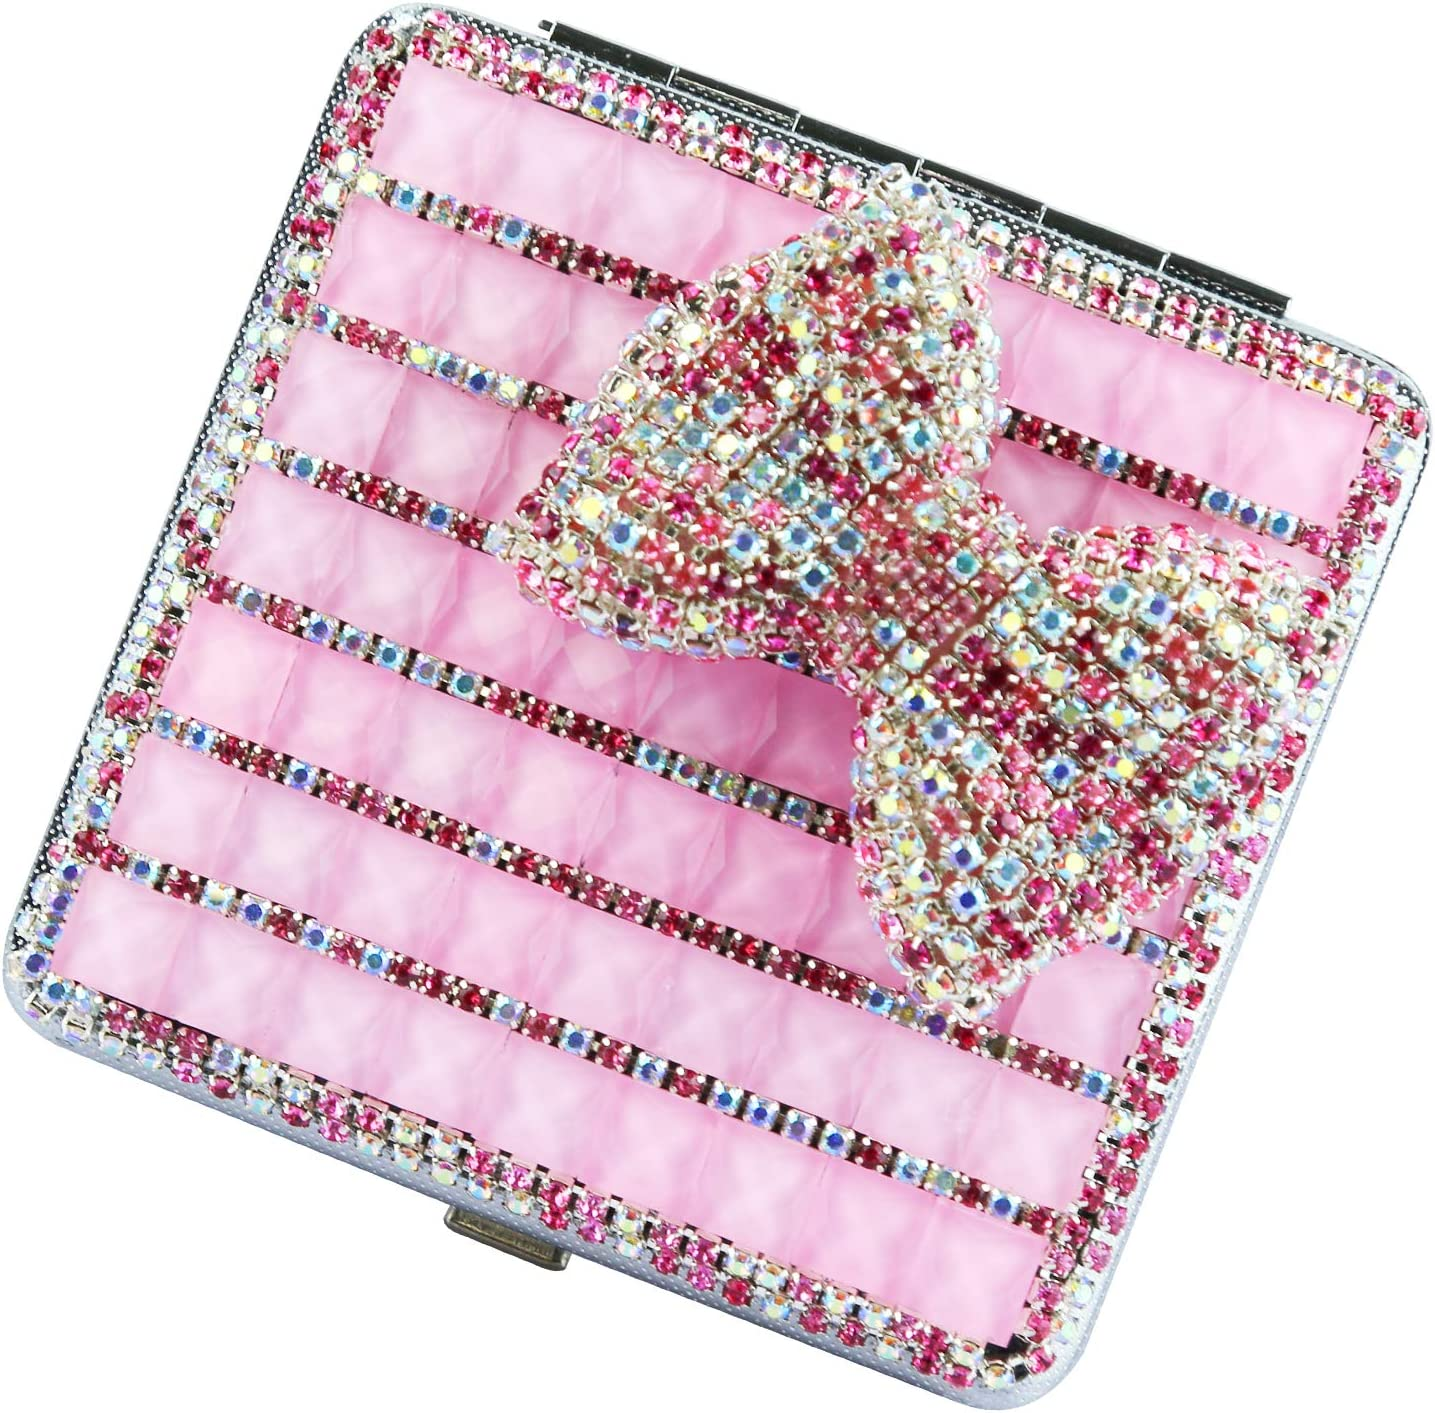 Max 83% OFF Lzttyee Alloy Portable Women Cigarette Popular shop is the lowest price challenge Box Bling Pock Case